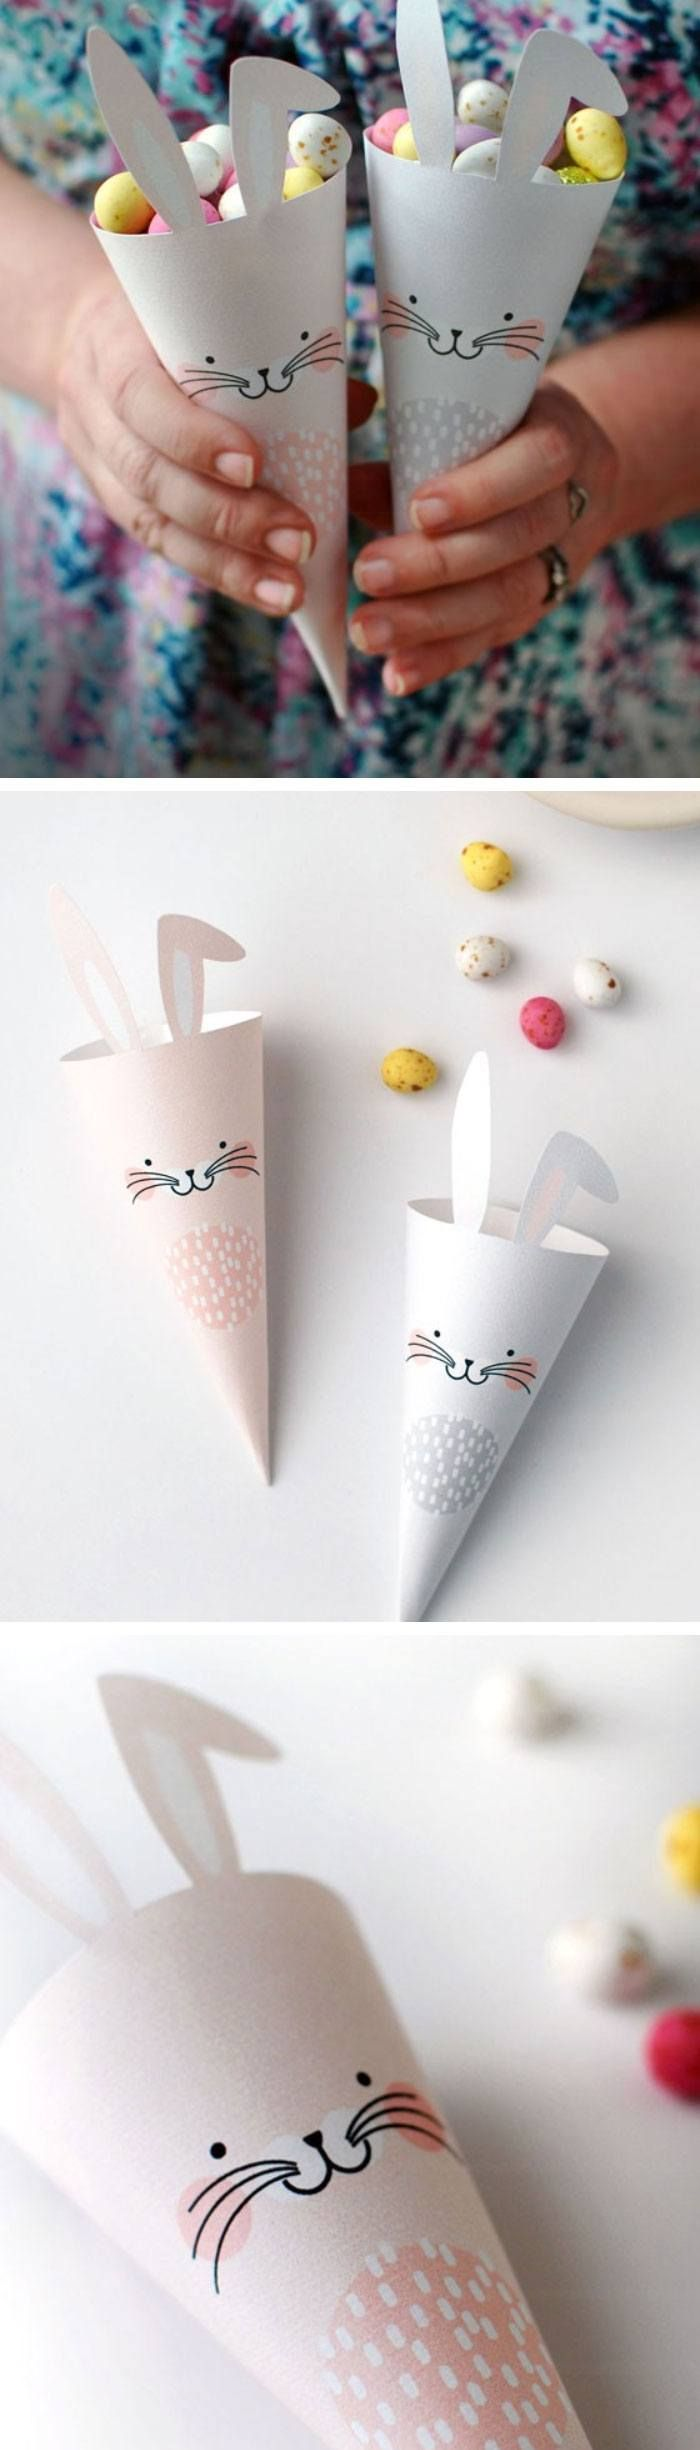 Easter Bunny Treat Cones | Click Pic for 20 DIY Easter Basket Ideas for Kids to Make | Easy Easter Crafts for Kids to Make